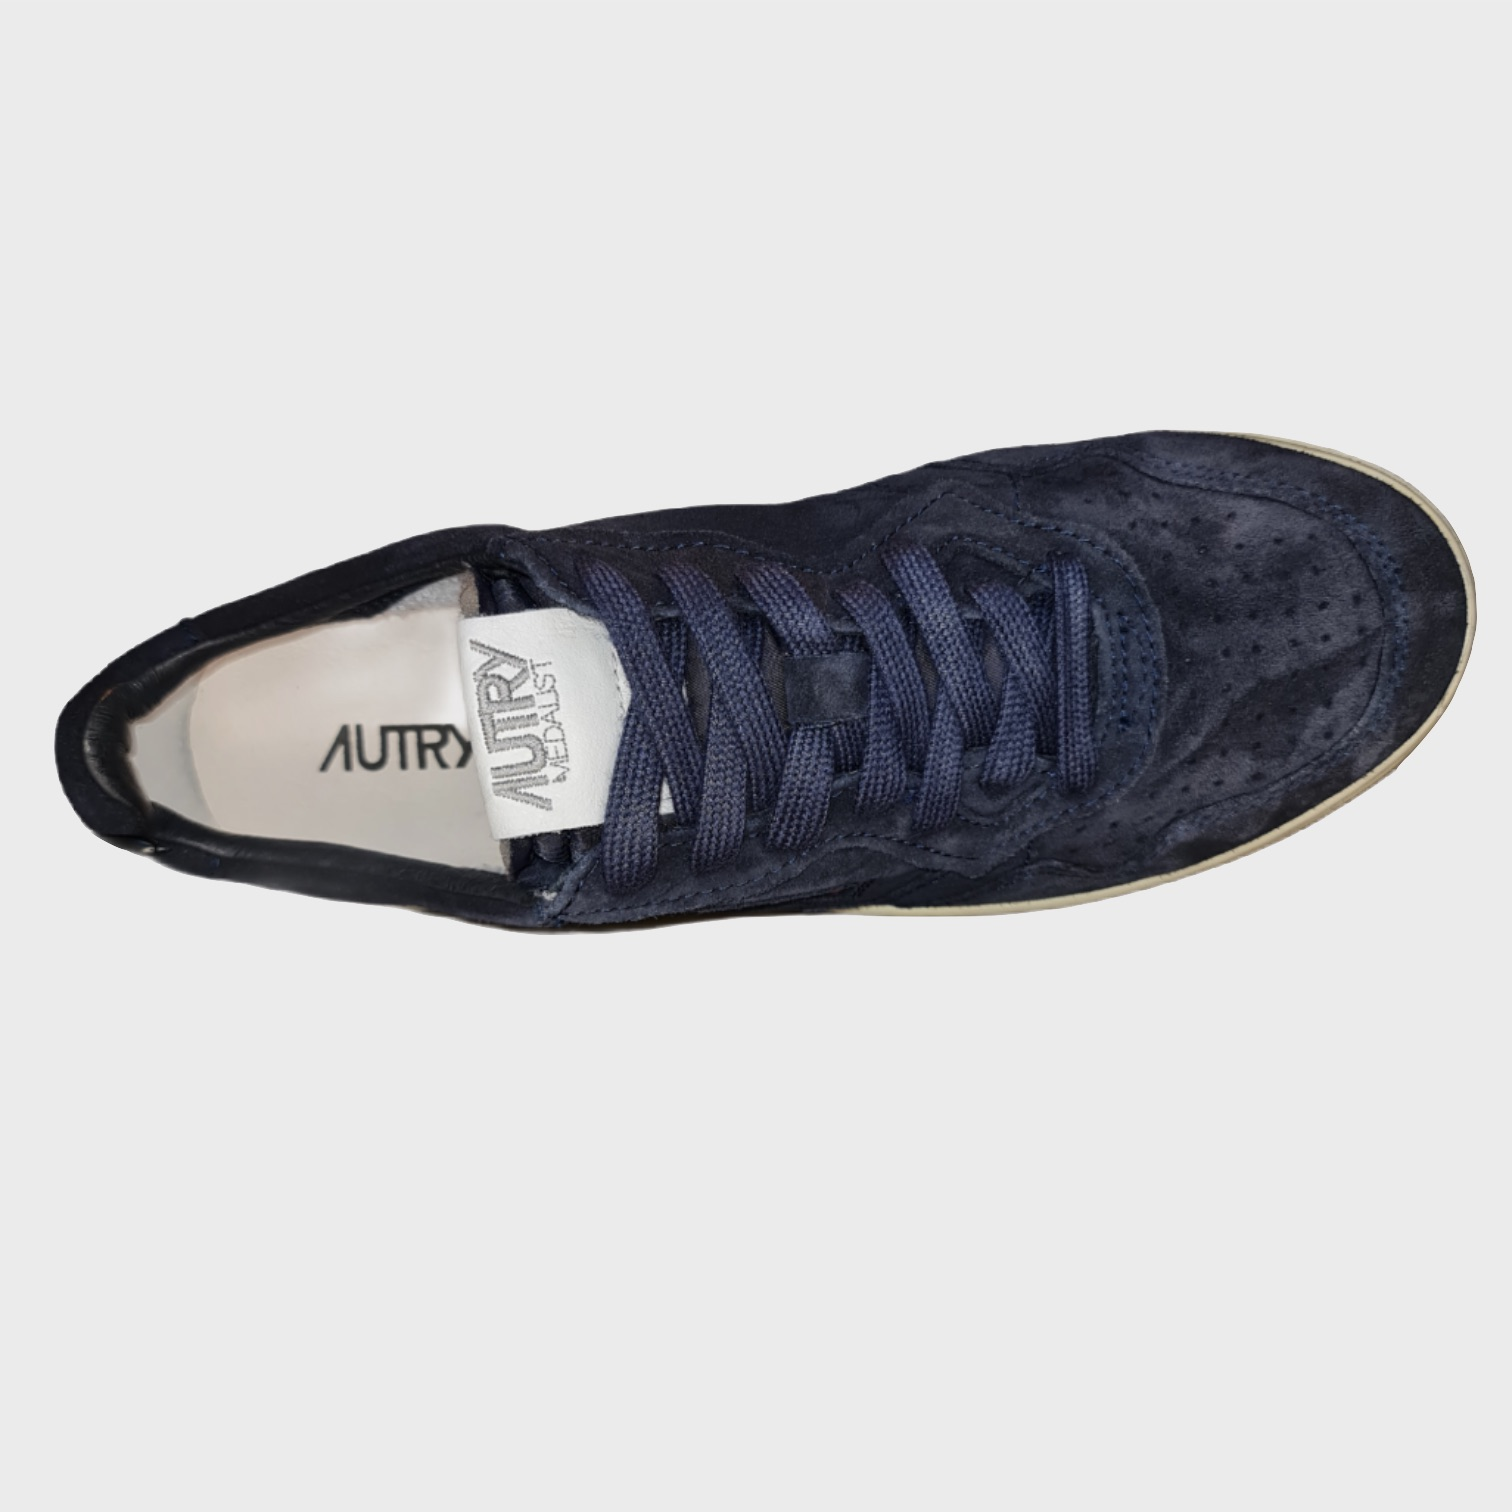 autry-action-shoes-full-suede-blue-upper